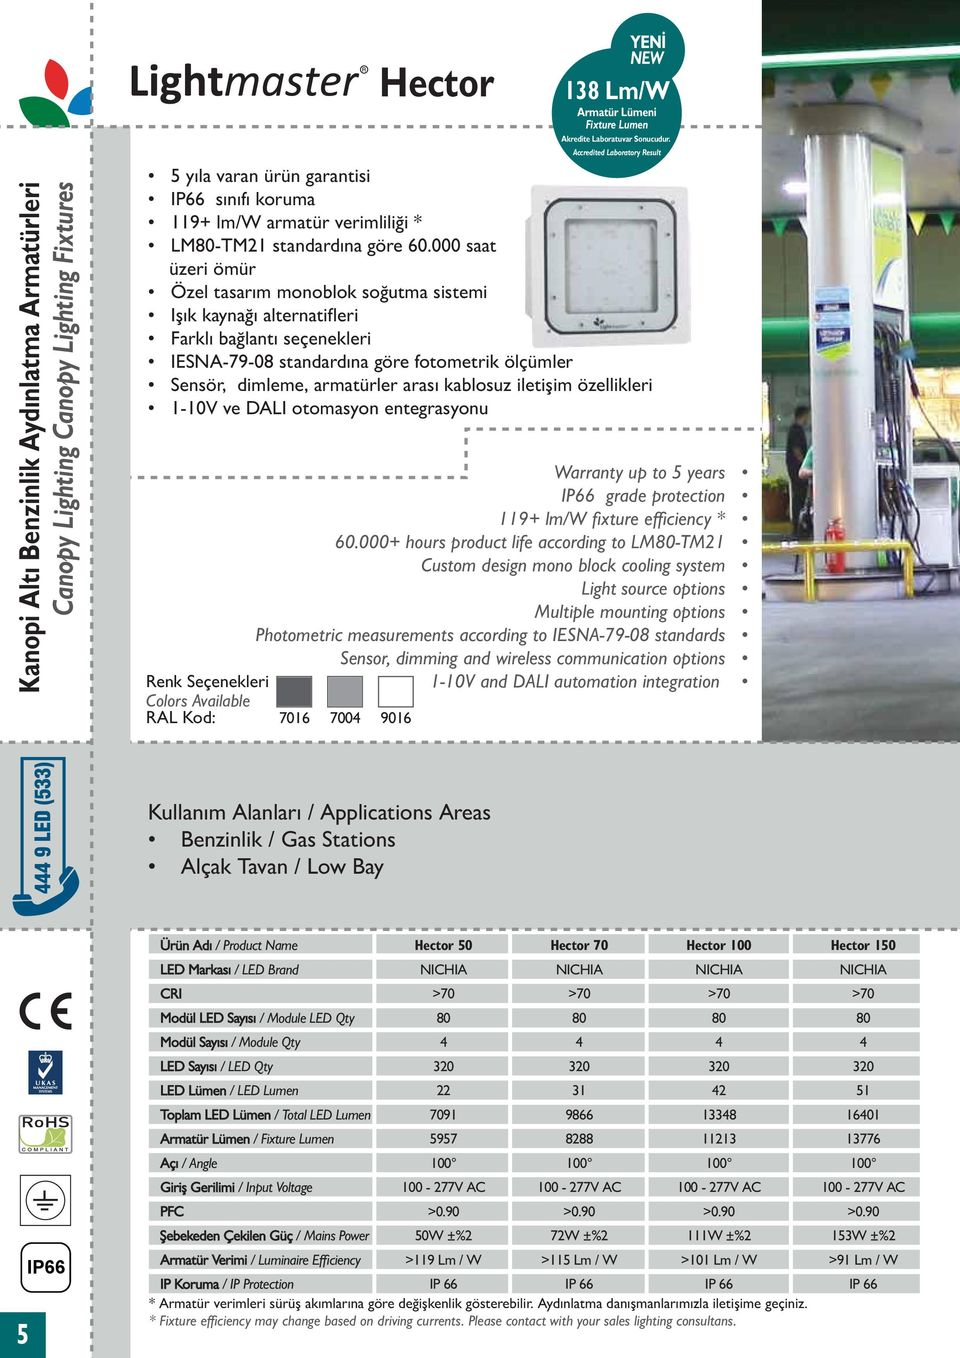 kablosuz iletişim özellikleri 1-10V ve DALI otomasyon entegrasyonu Warranty up to 5 years IP66 grade protection 119+ lm/w fixture efficiency * 60.